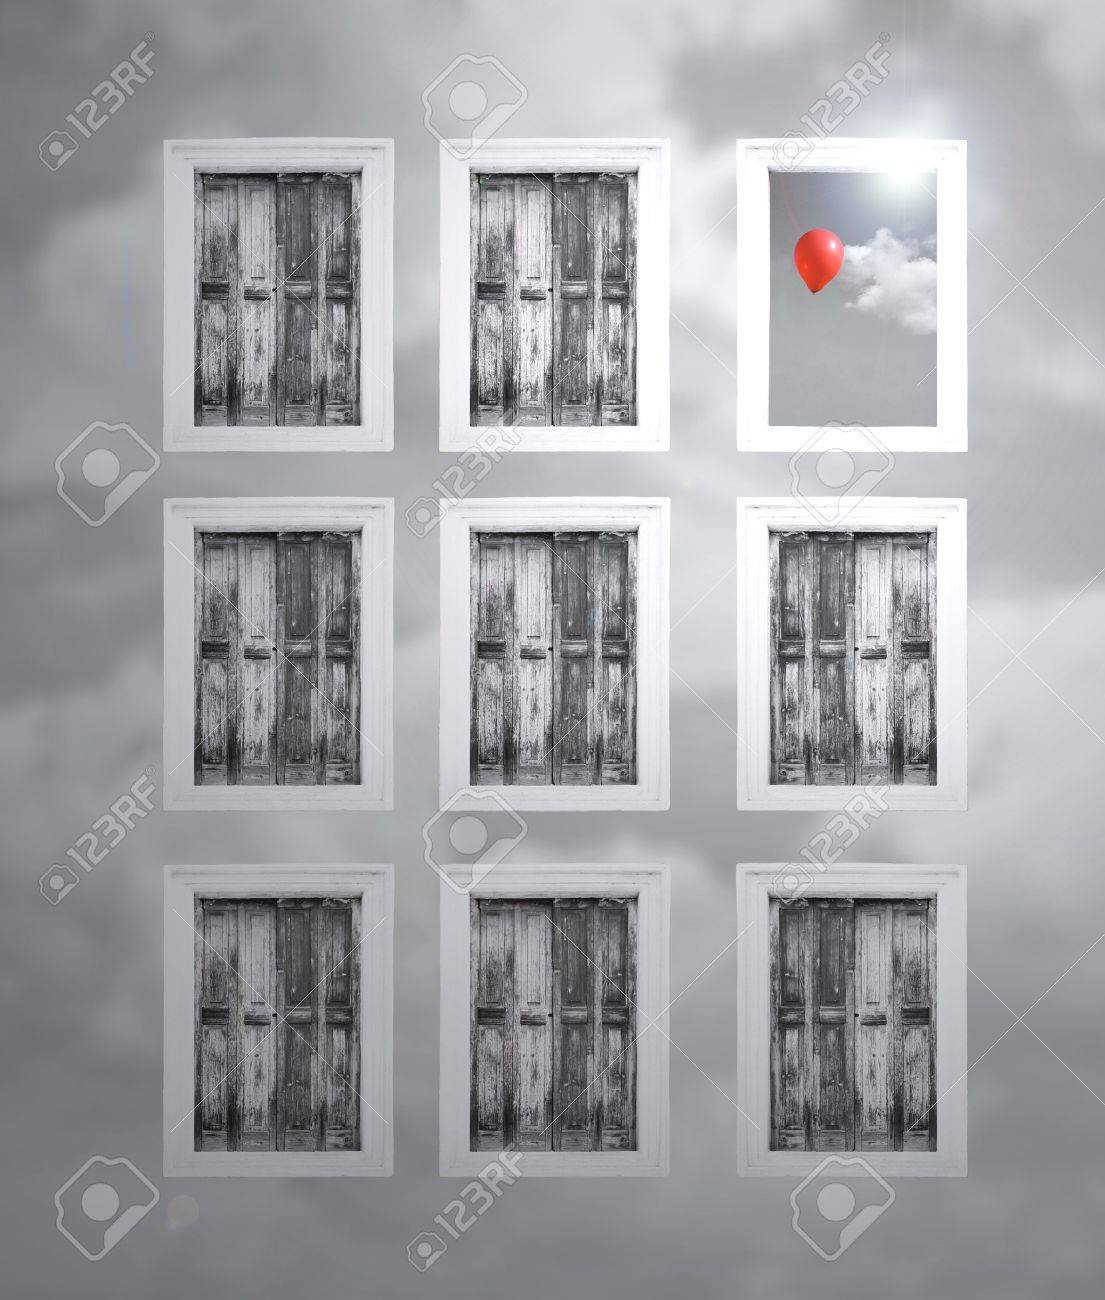 Fantasy shutters in a cloudy wall and one opened window with cloud and red balloon in black and white - 14274849